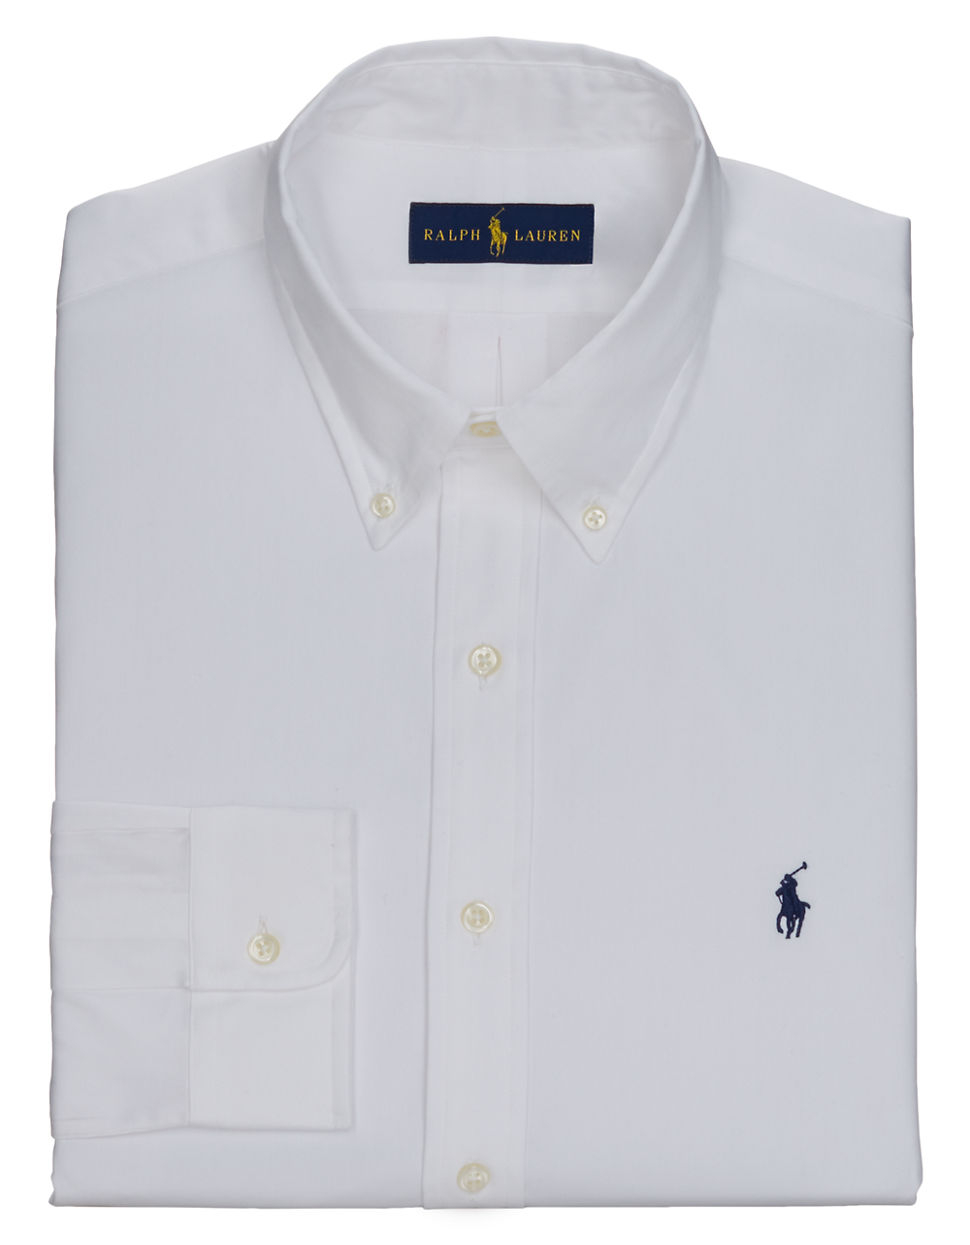 Polo Ralph Lauren Pinpoint Oxford Dress Shirt In White For